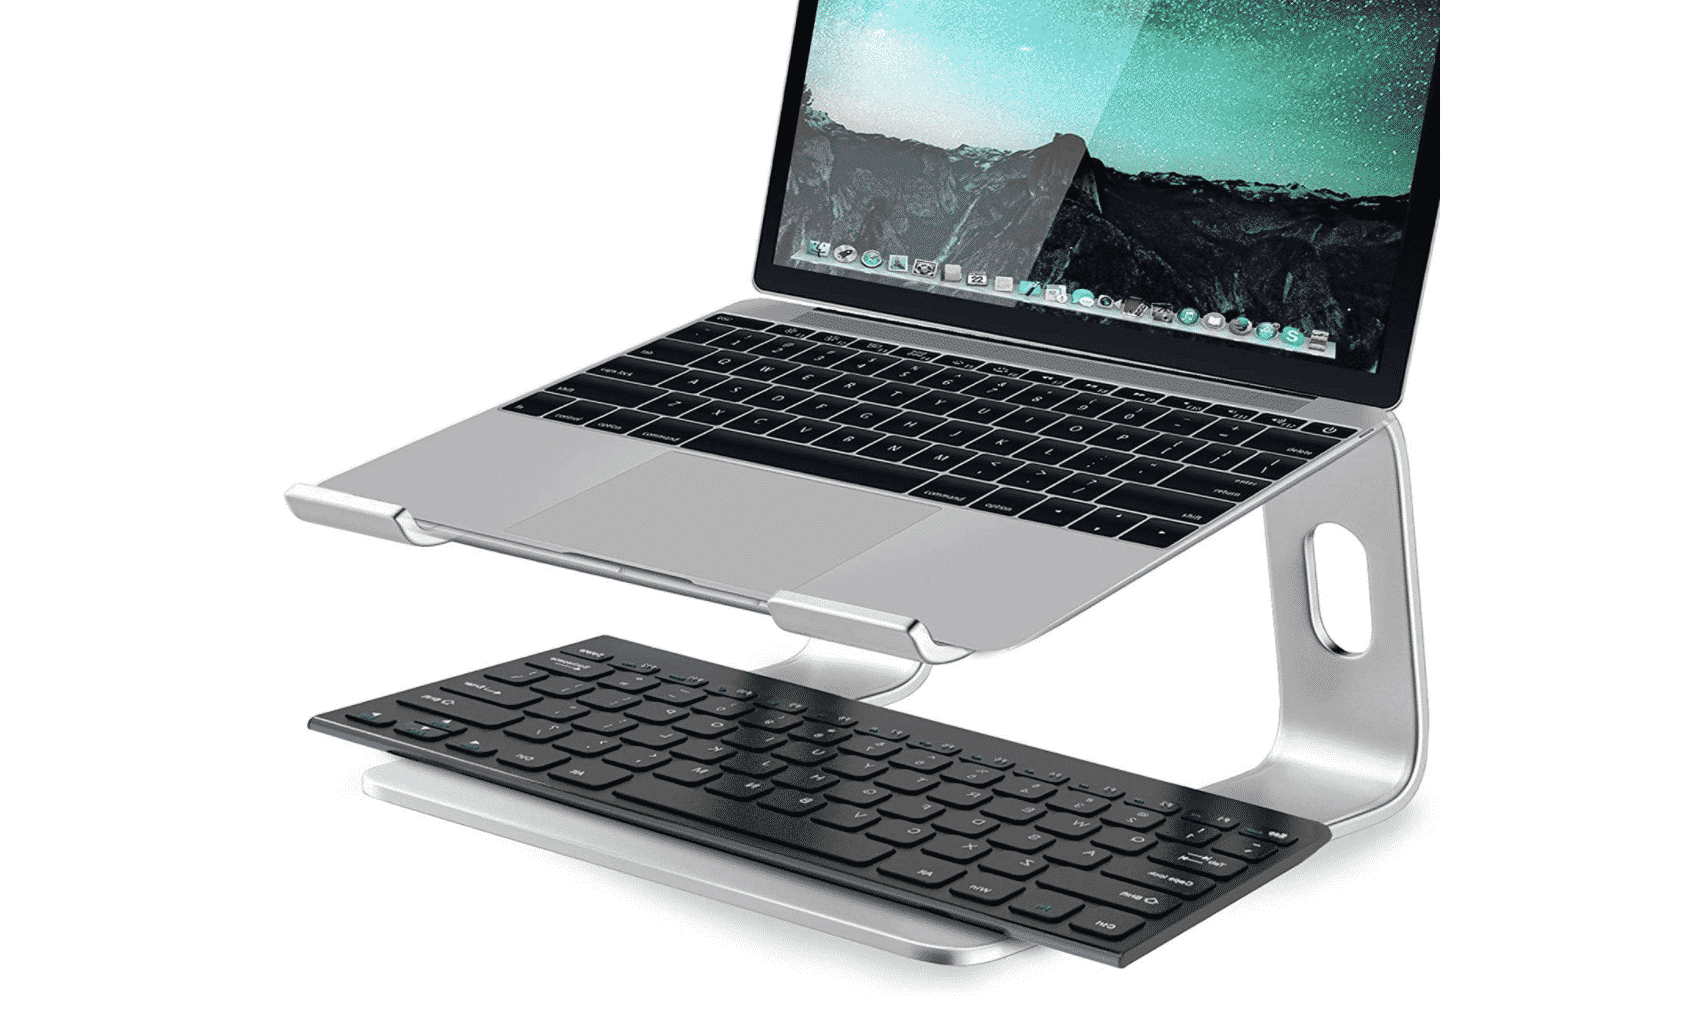 Sturdy and Stylish Aluminum Stand for Your MacBook